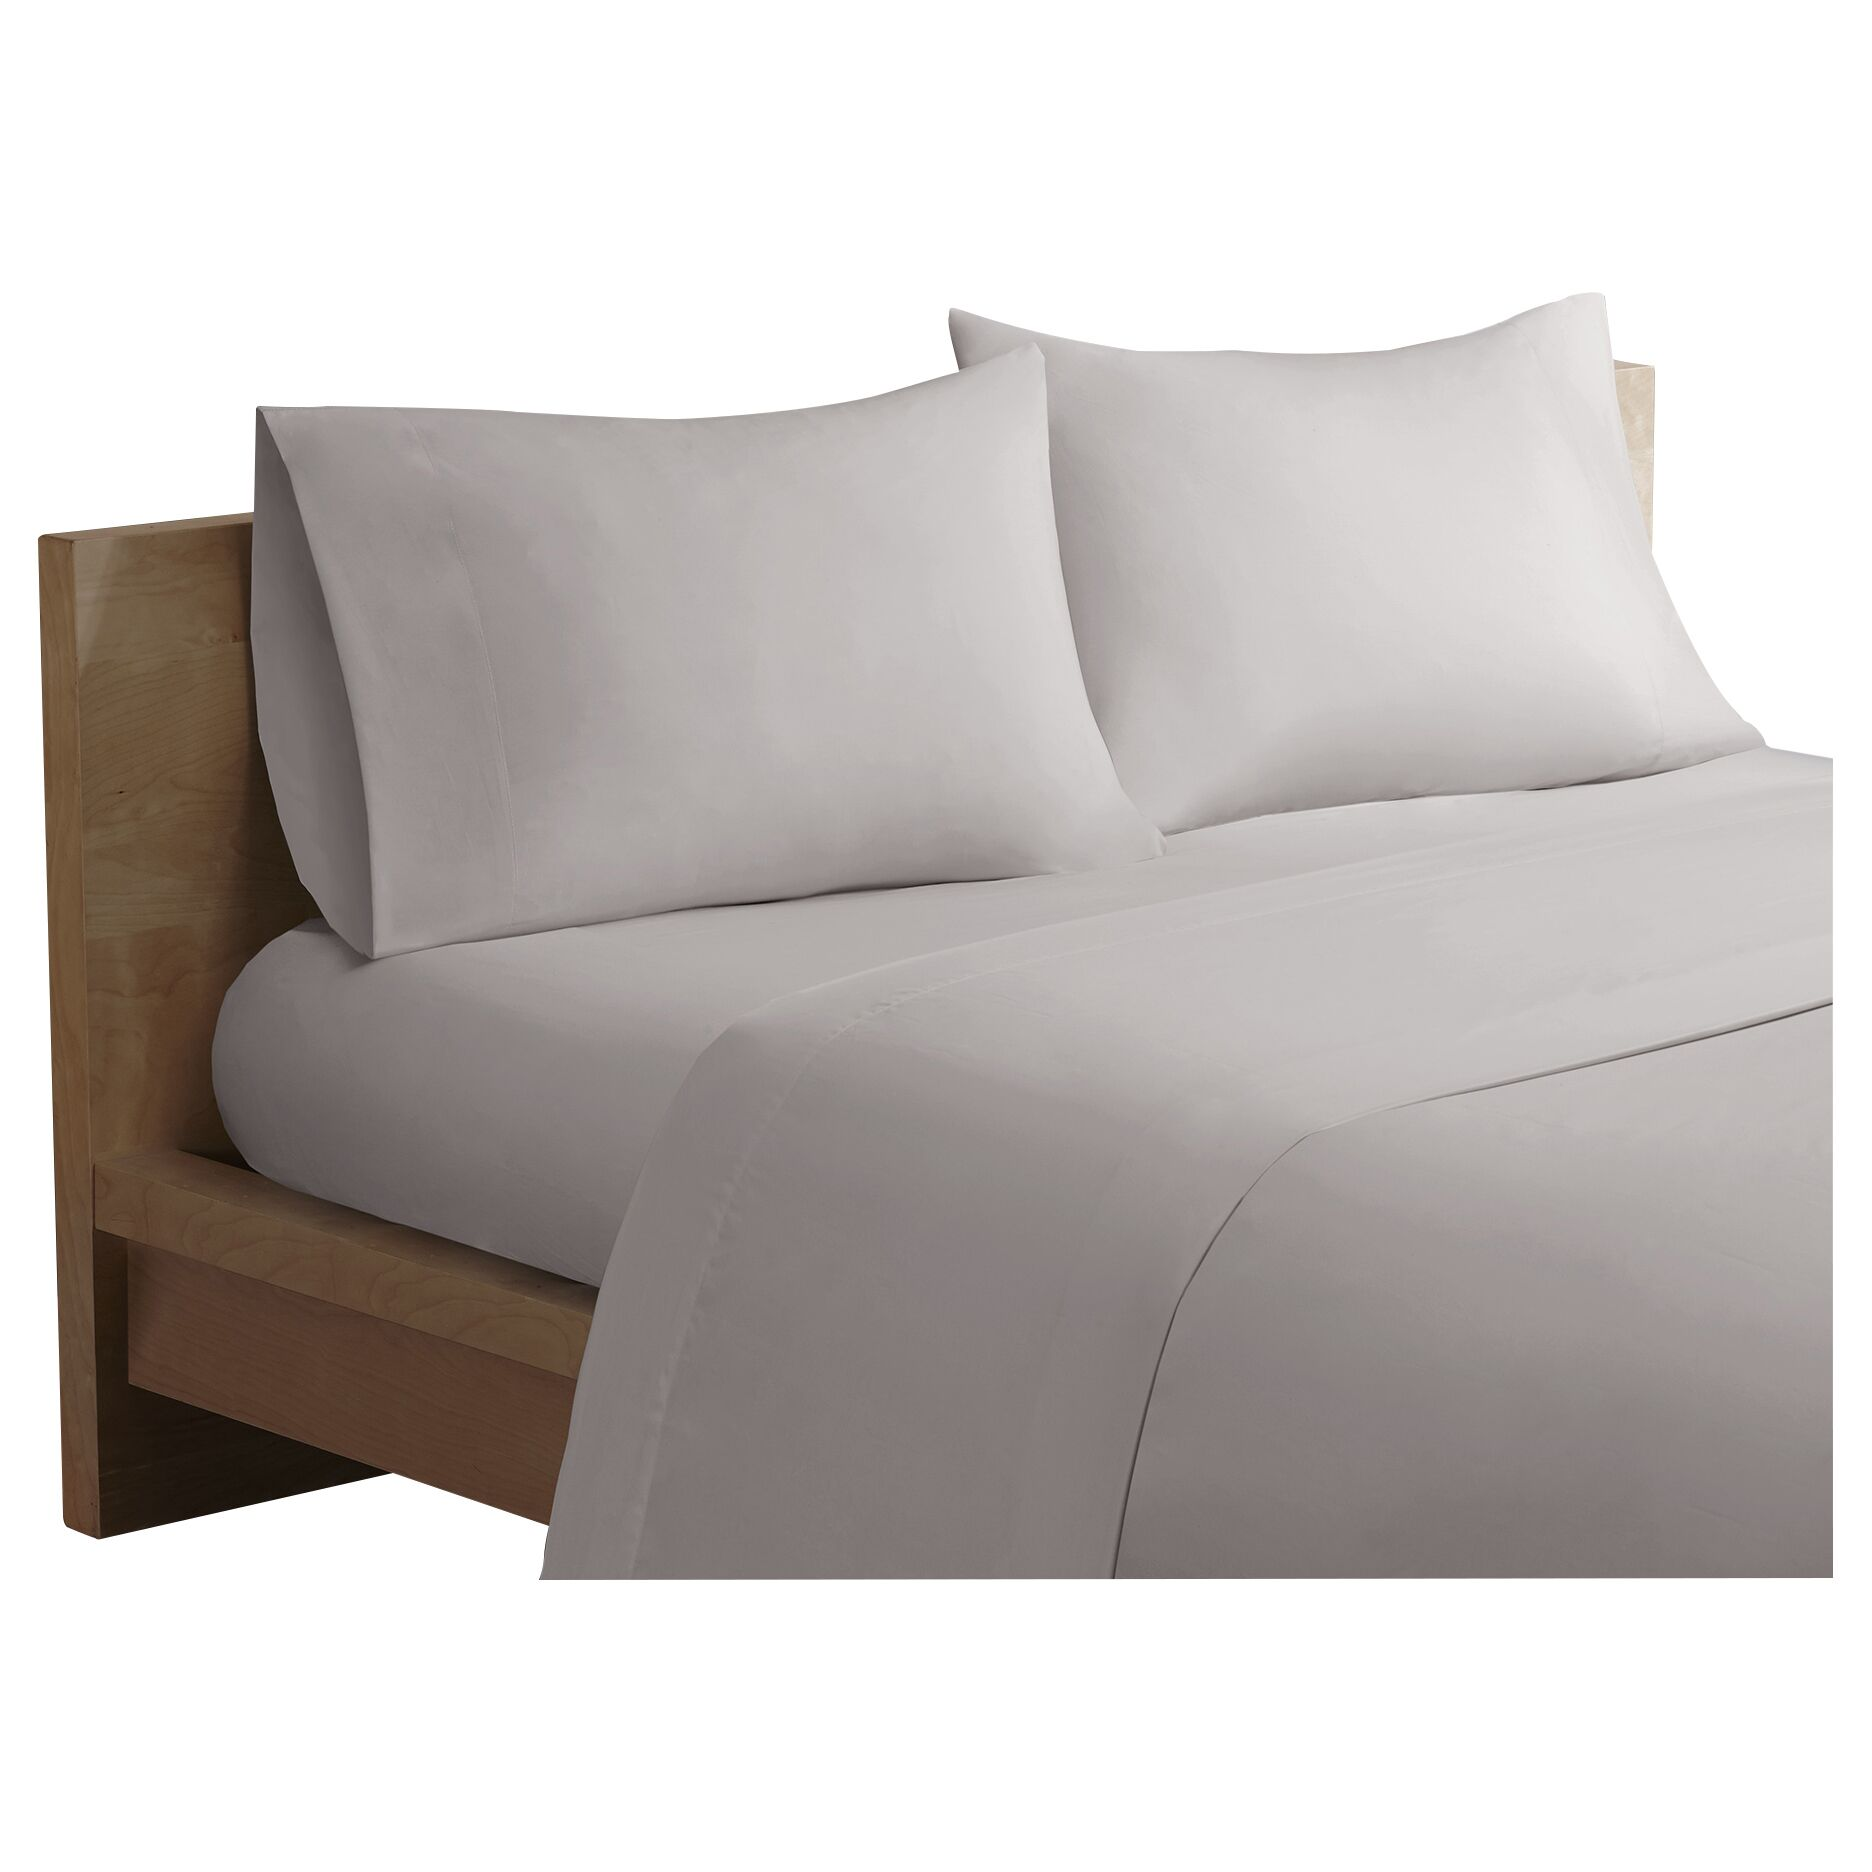 Bridget Forever Percale 200 Thread Count Cotton Sheet Set Size: California King, Color: Grey